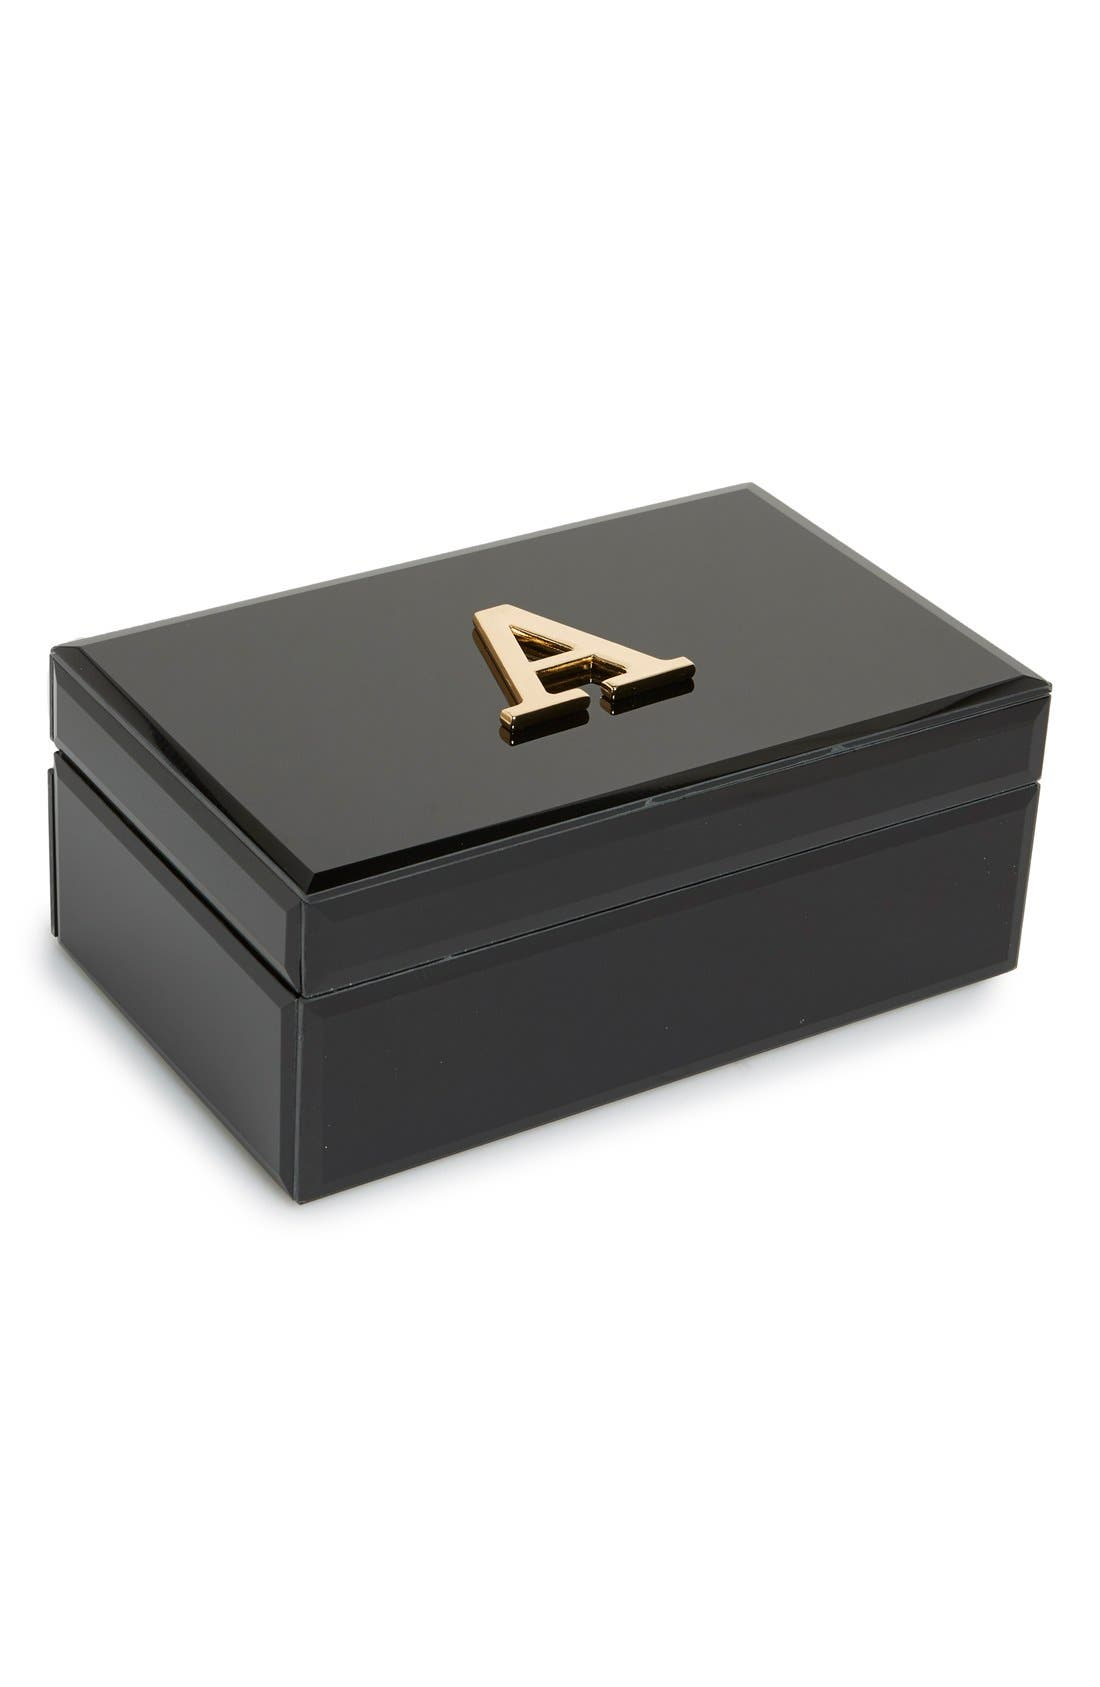 Monogram Jewelry Box,                         Main,                         color, 001